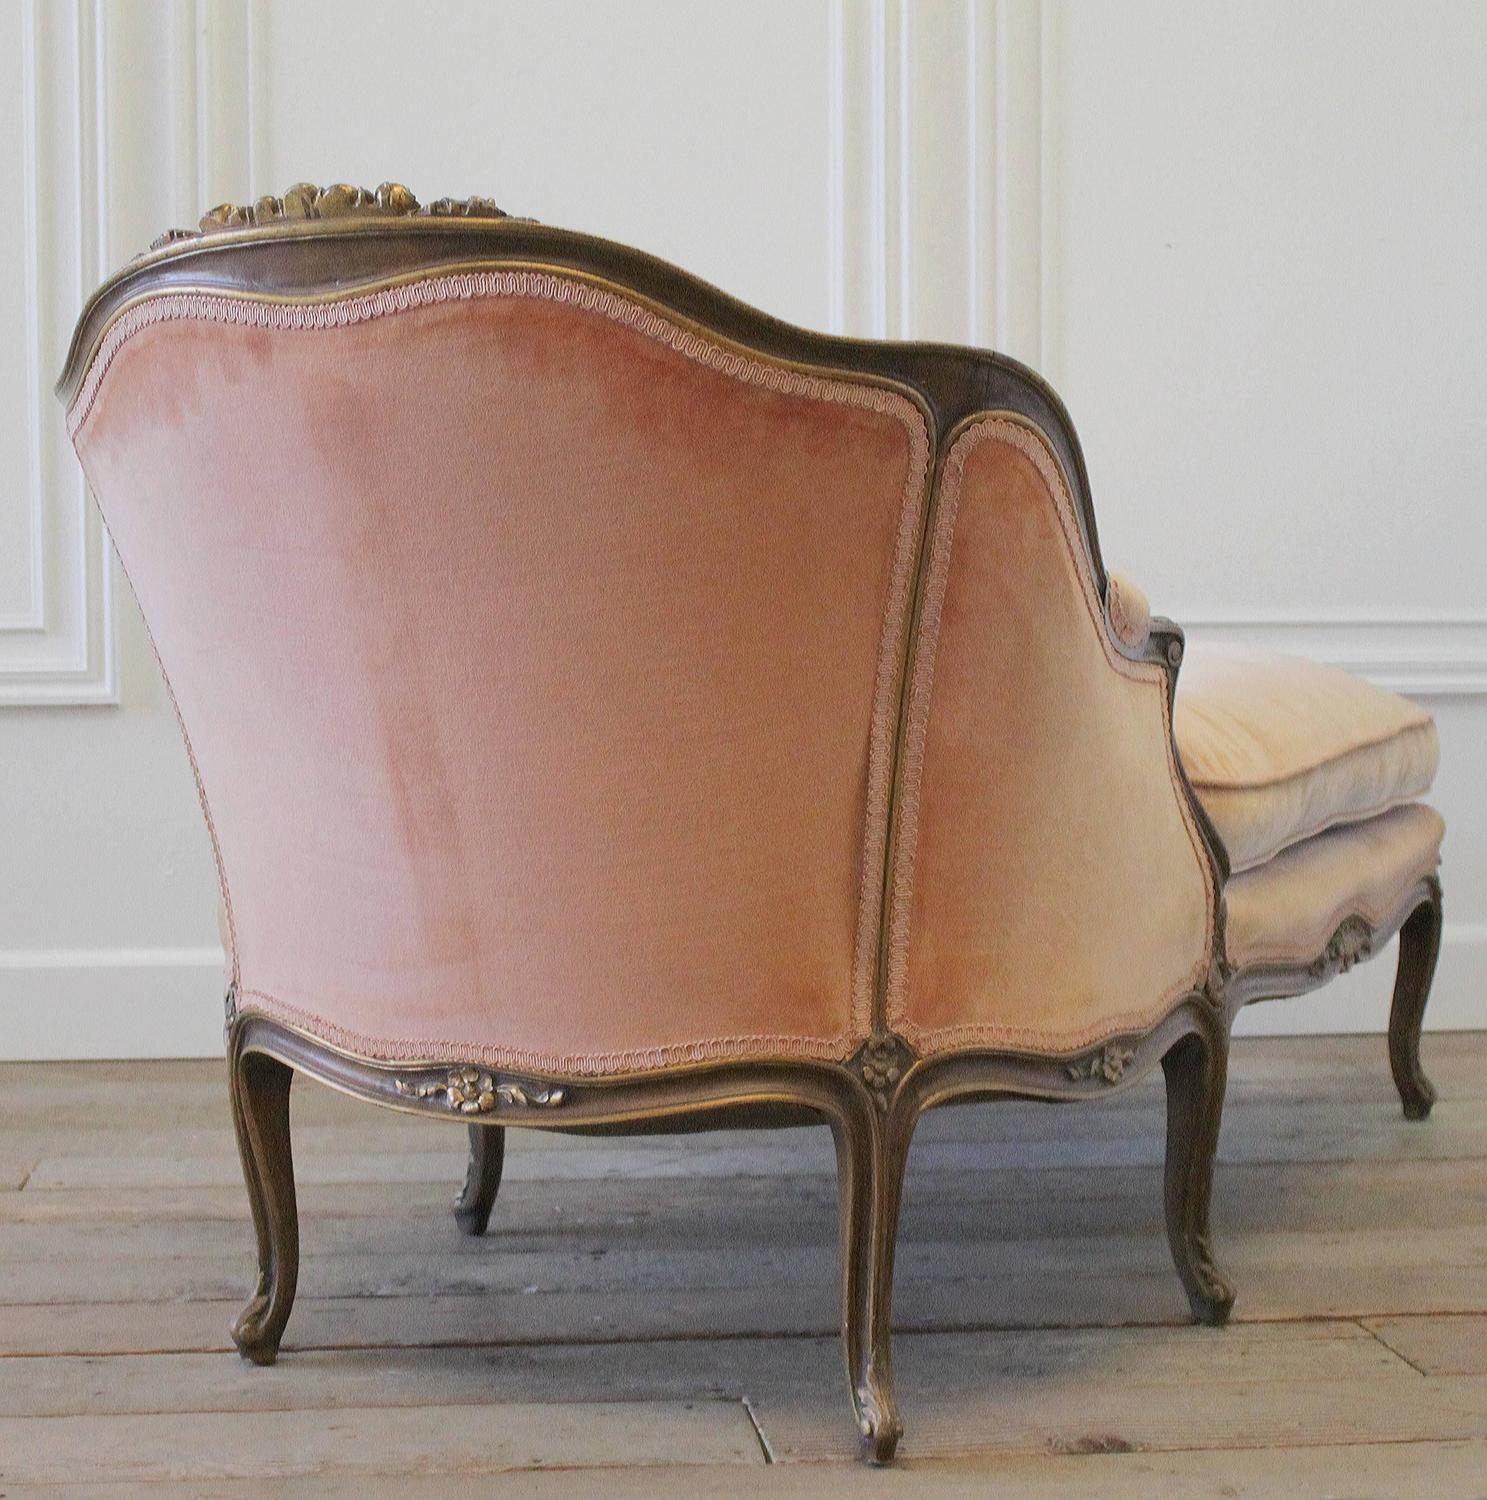 19th century antique french louis xv style chaise longue in vintage velvet at - Chaises vintage occasion ...